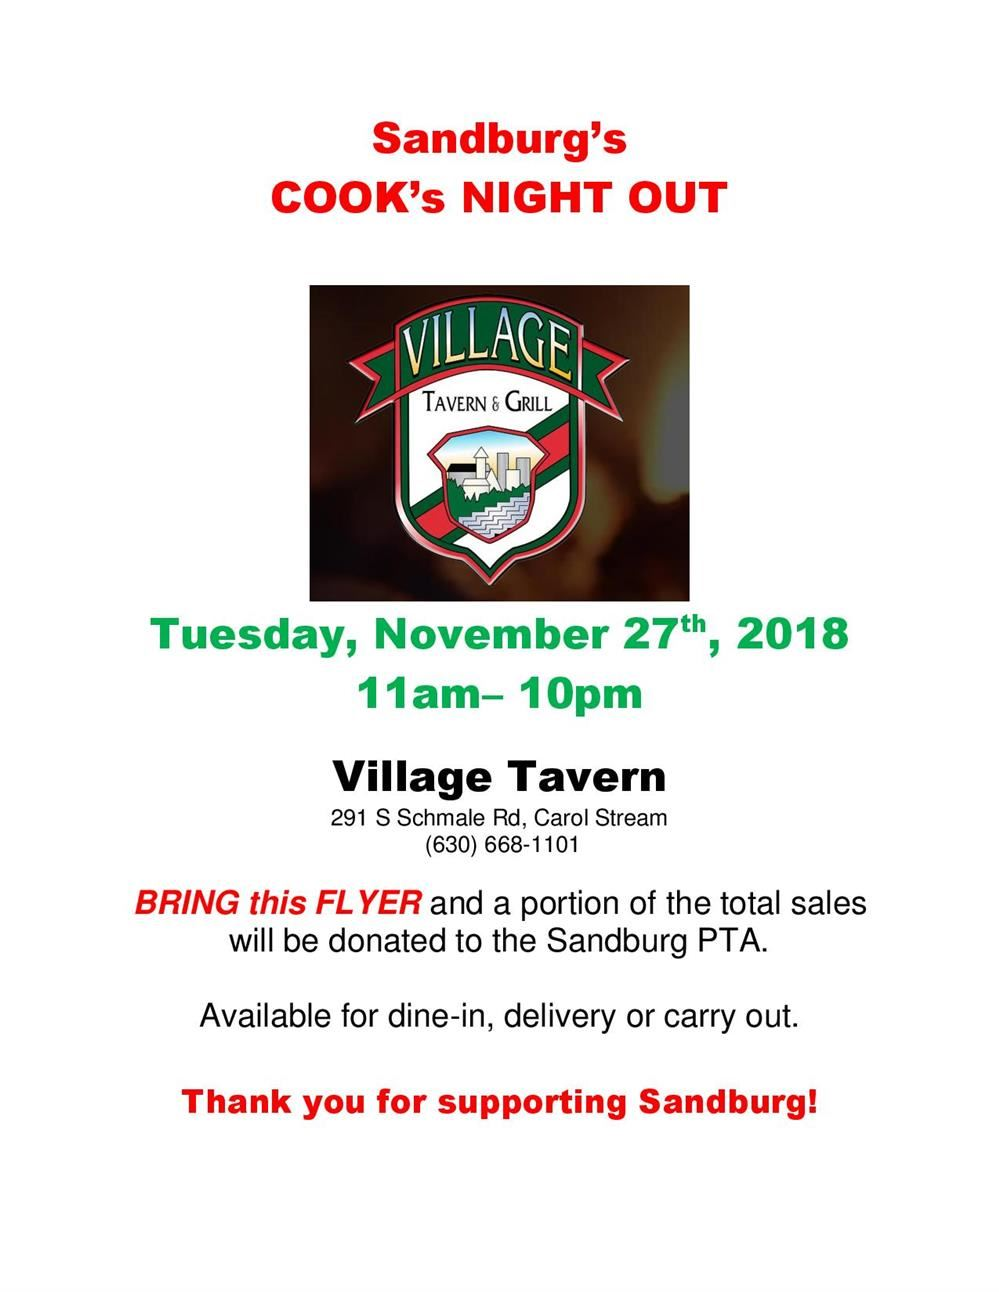 Cooks Night Out - Village Tavern